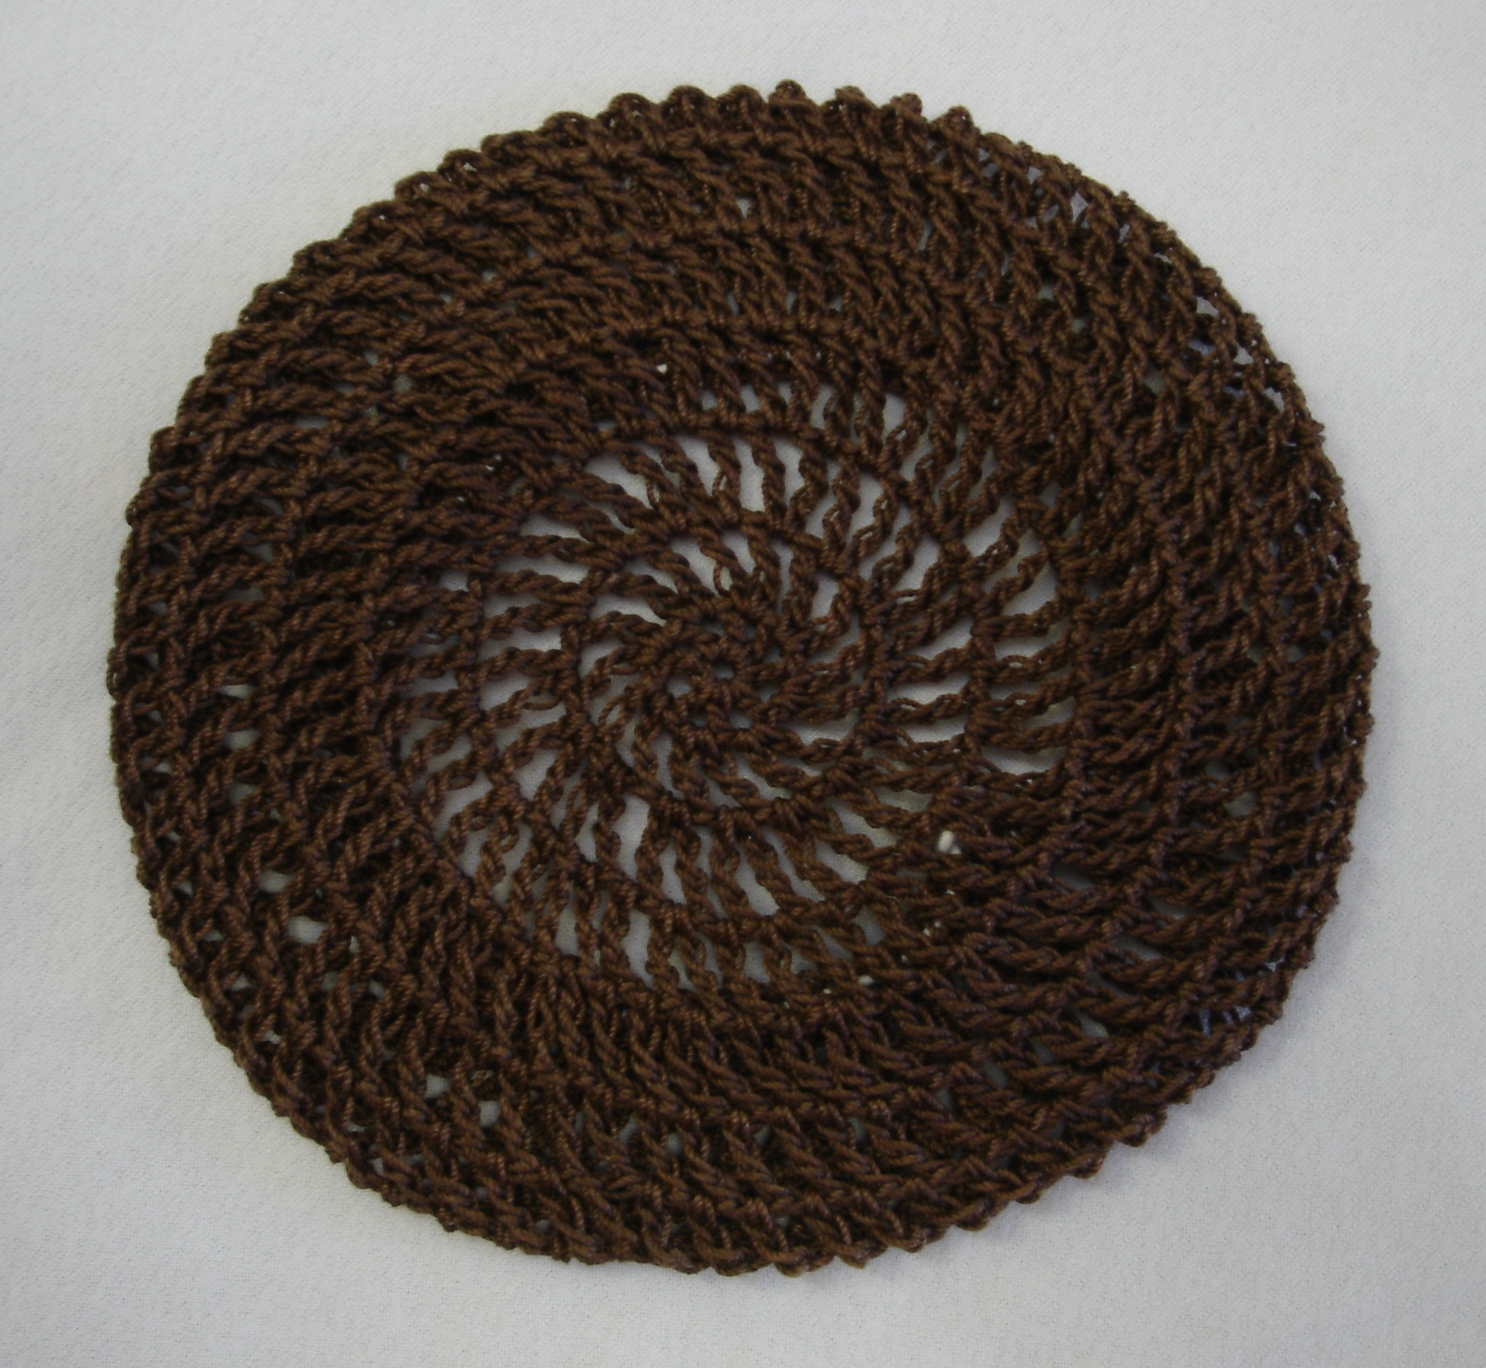 Crochet Hair Bun Cover : Crocheted Traditional Hair Nets / Bun Covers Amish Mennonite ...